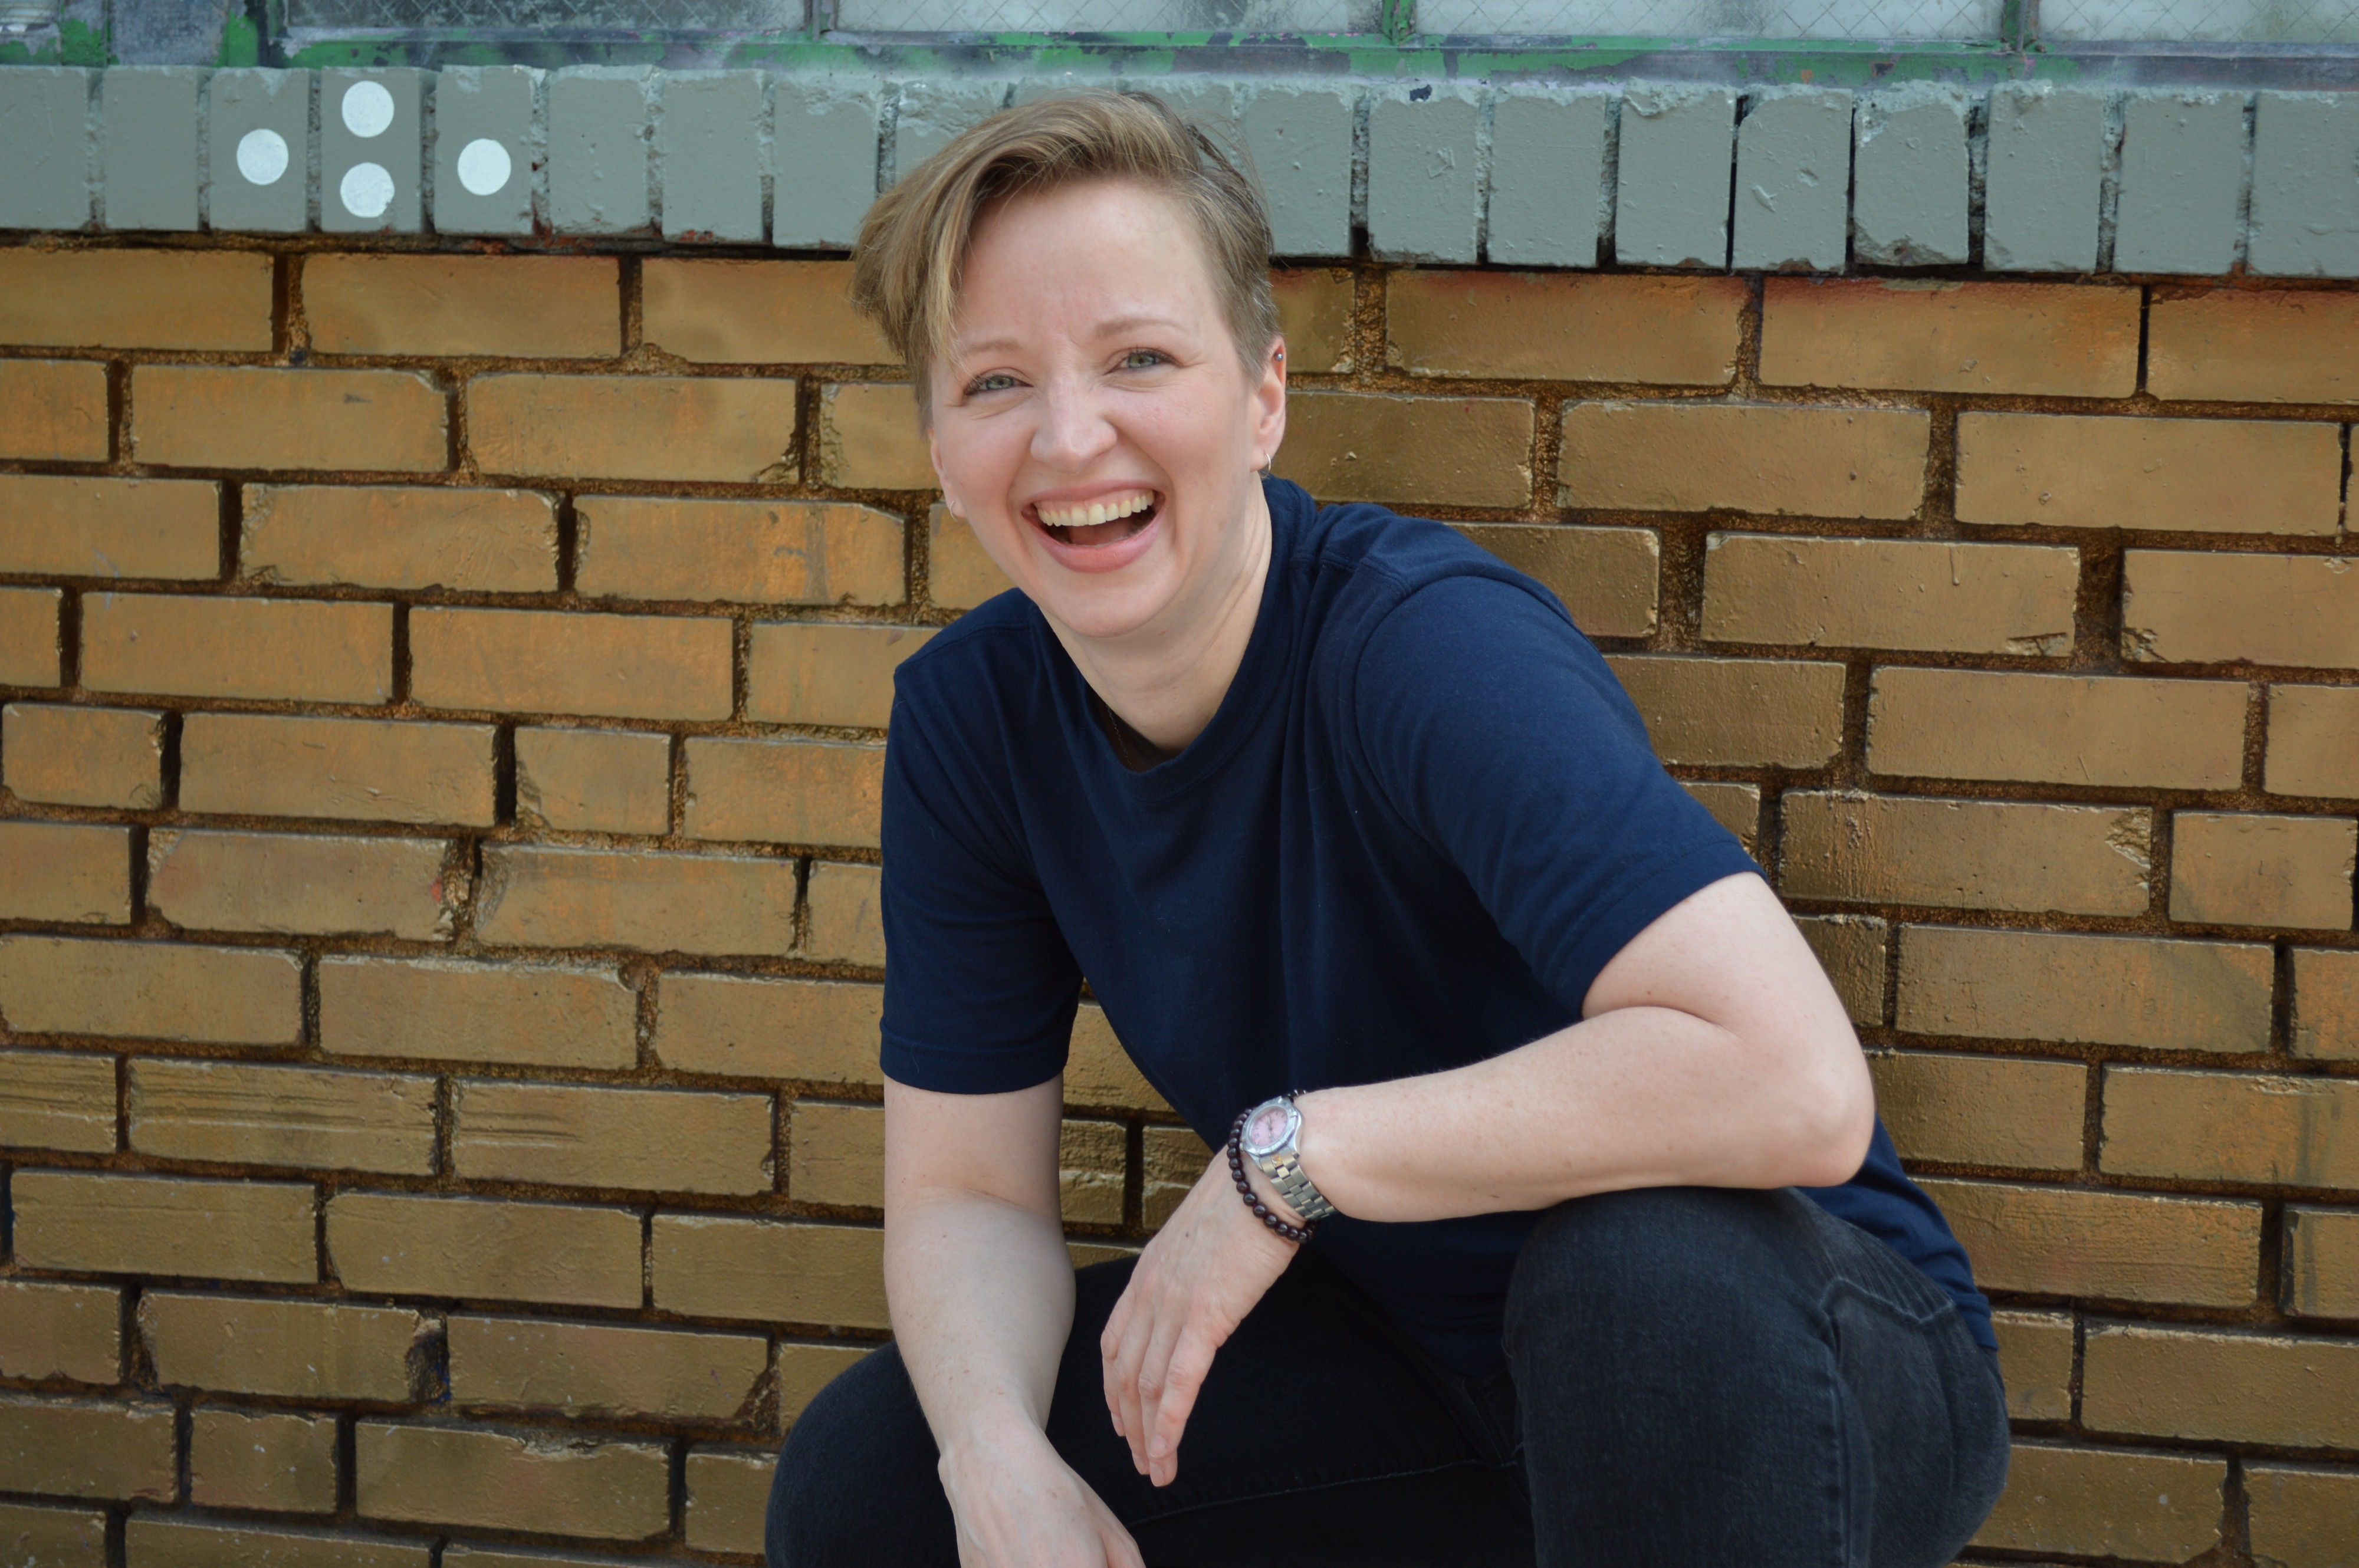 Diane Whiddon laughing, crouched in front of brick wall